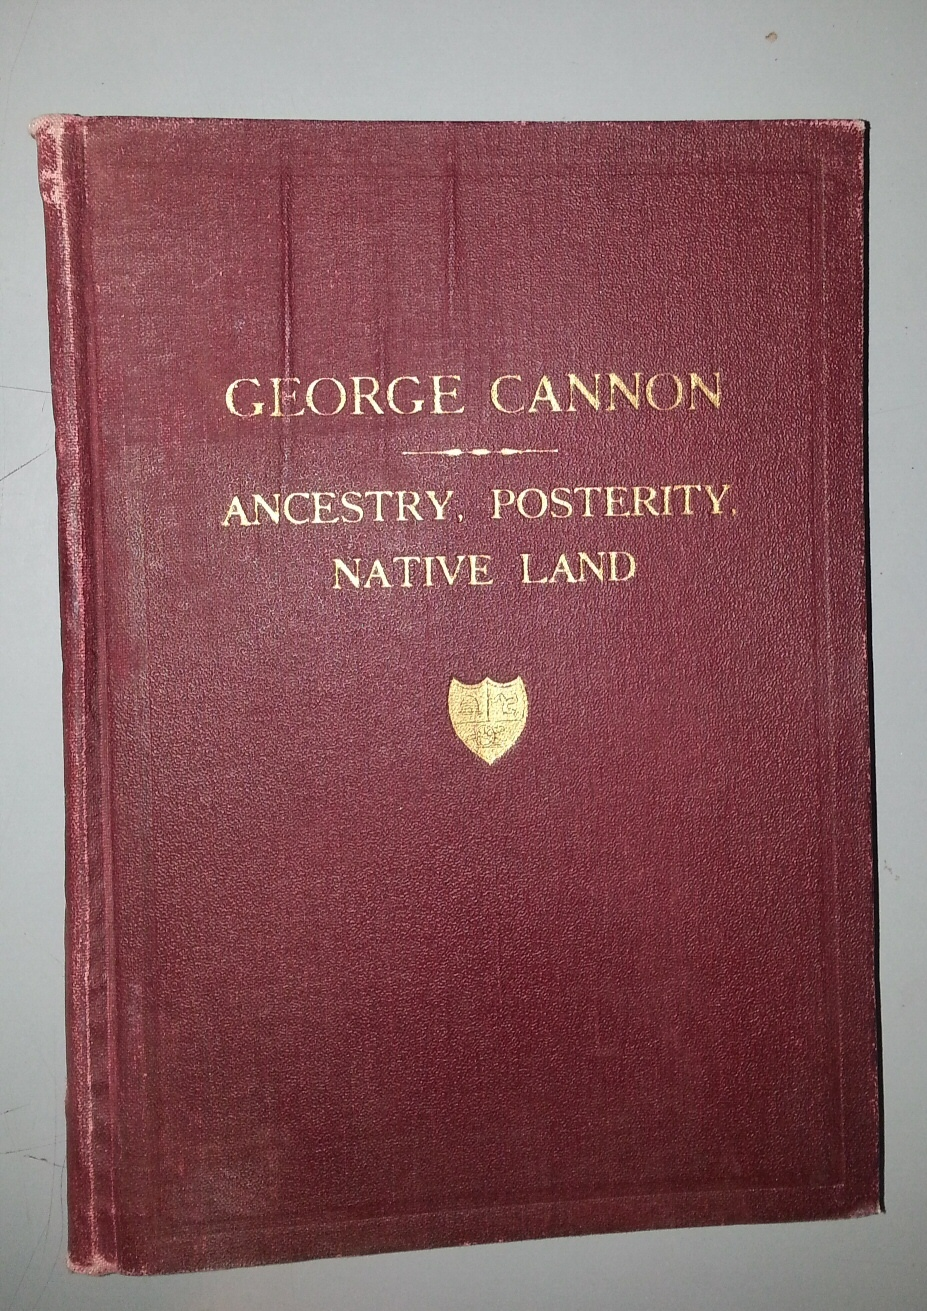 George Cannon The Immigrant, Isle of Man, 1794 - St Louis, U.S.A., 1844 His Ancestry, His Life, His Native Land, His Posterity, Cannon, John Q.